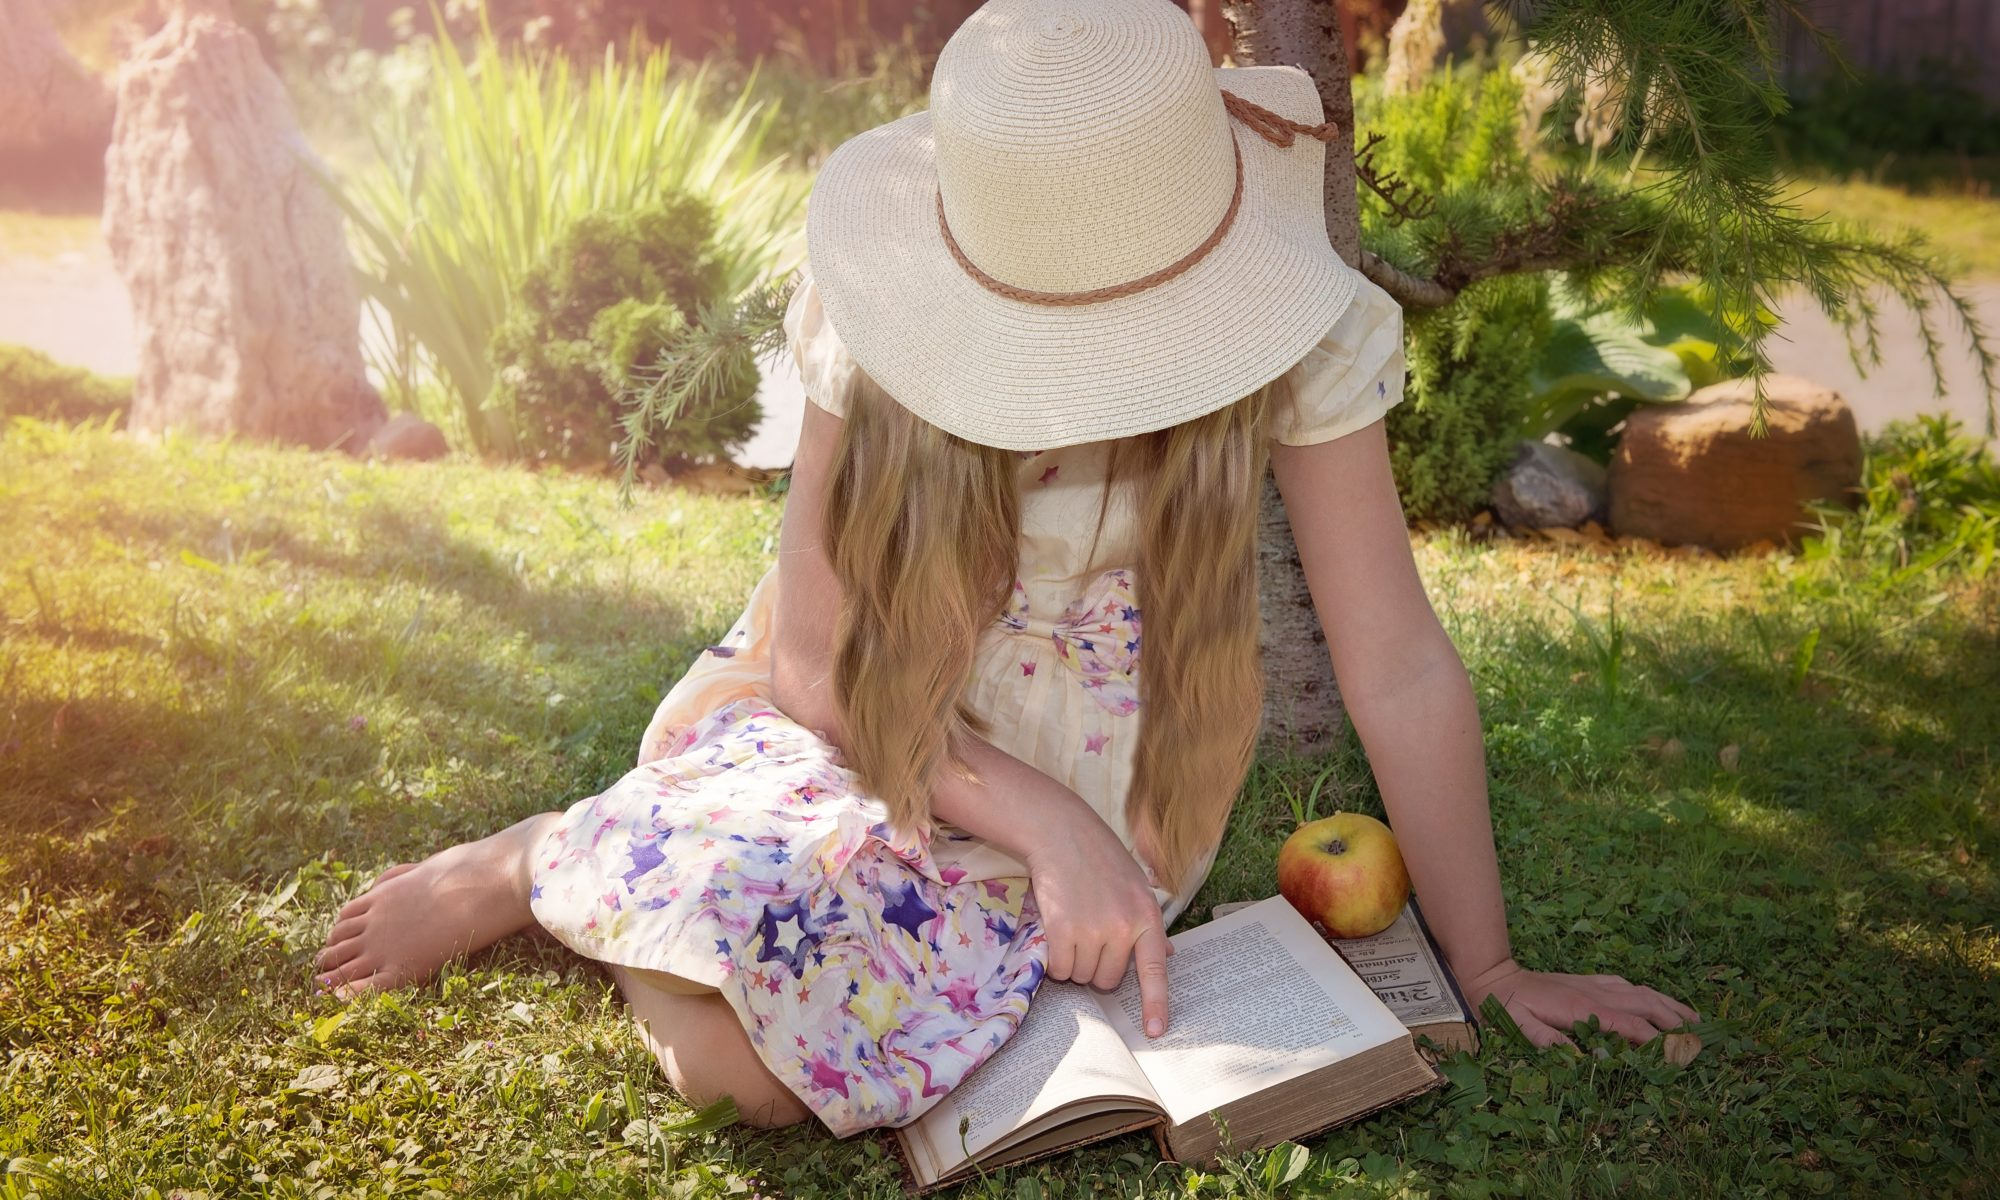 girl reading on the lawn with an apple next to her.